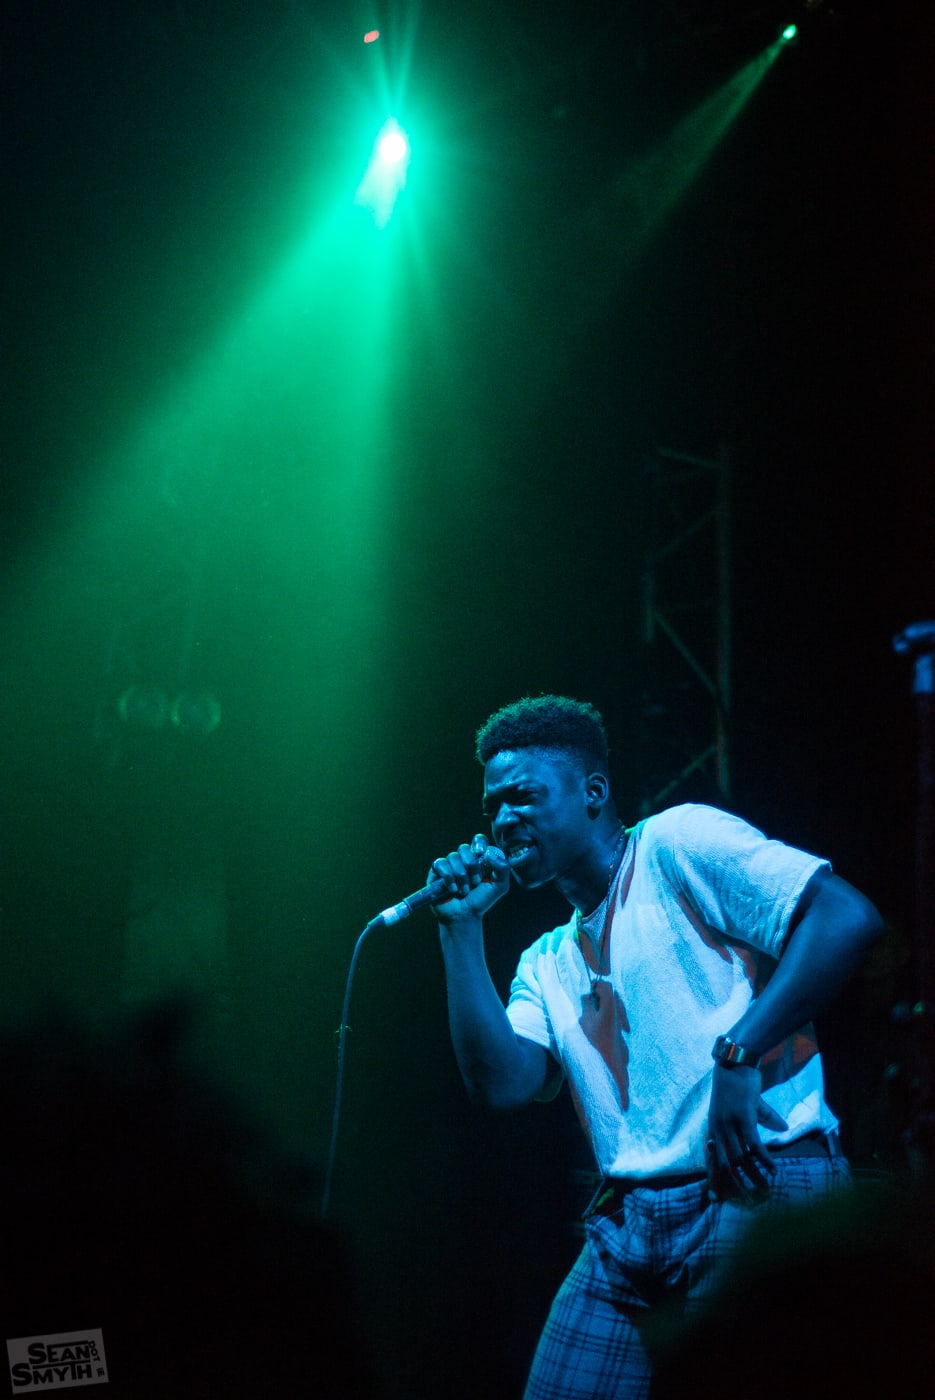 jafaris-at-the-button-factory-by-sean-smyth-28-9-16-4-of-8